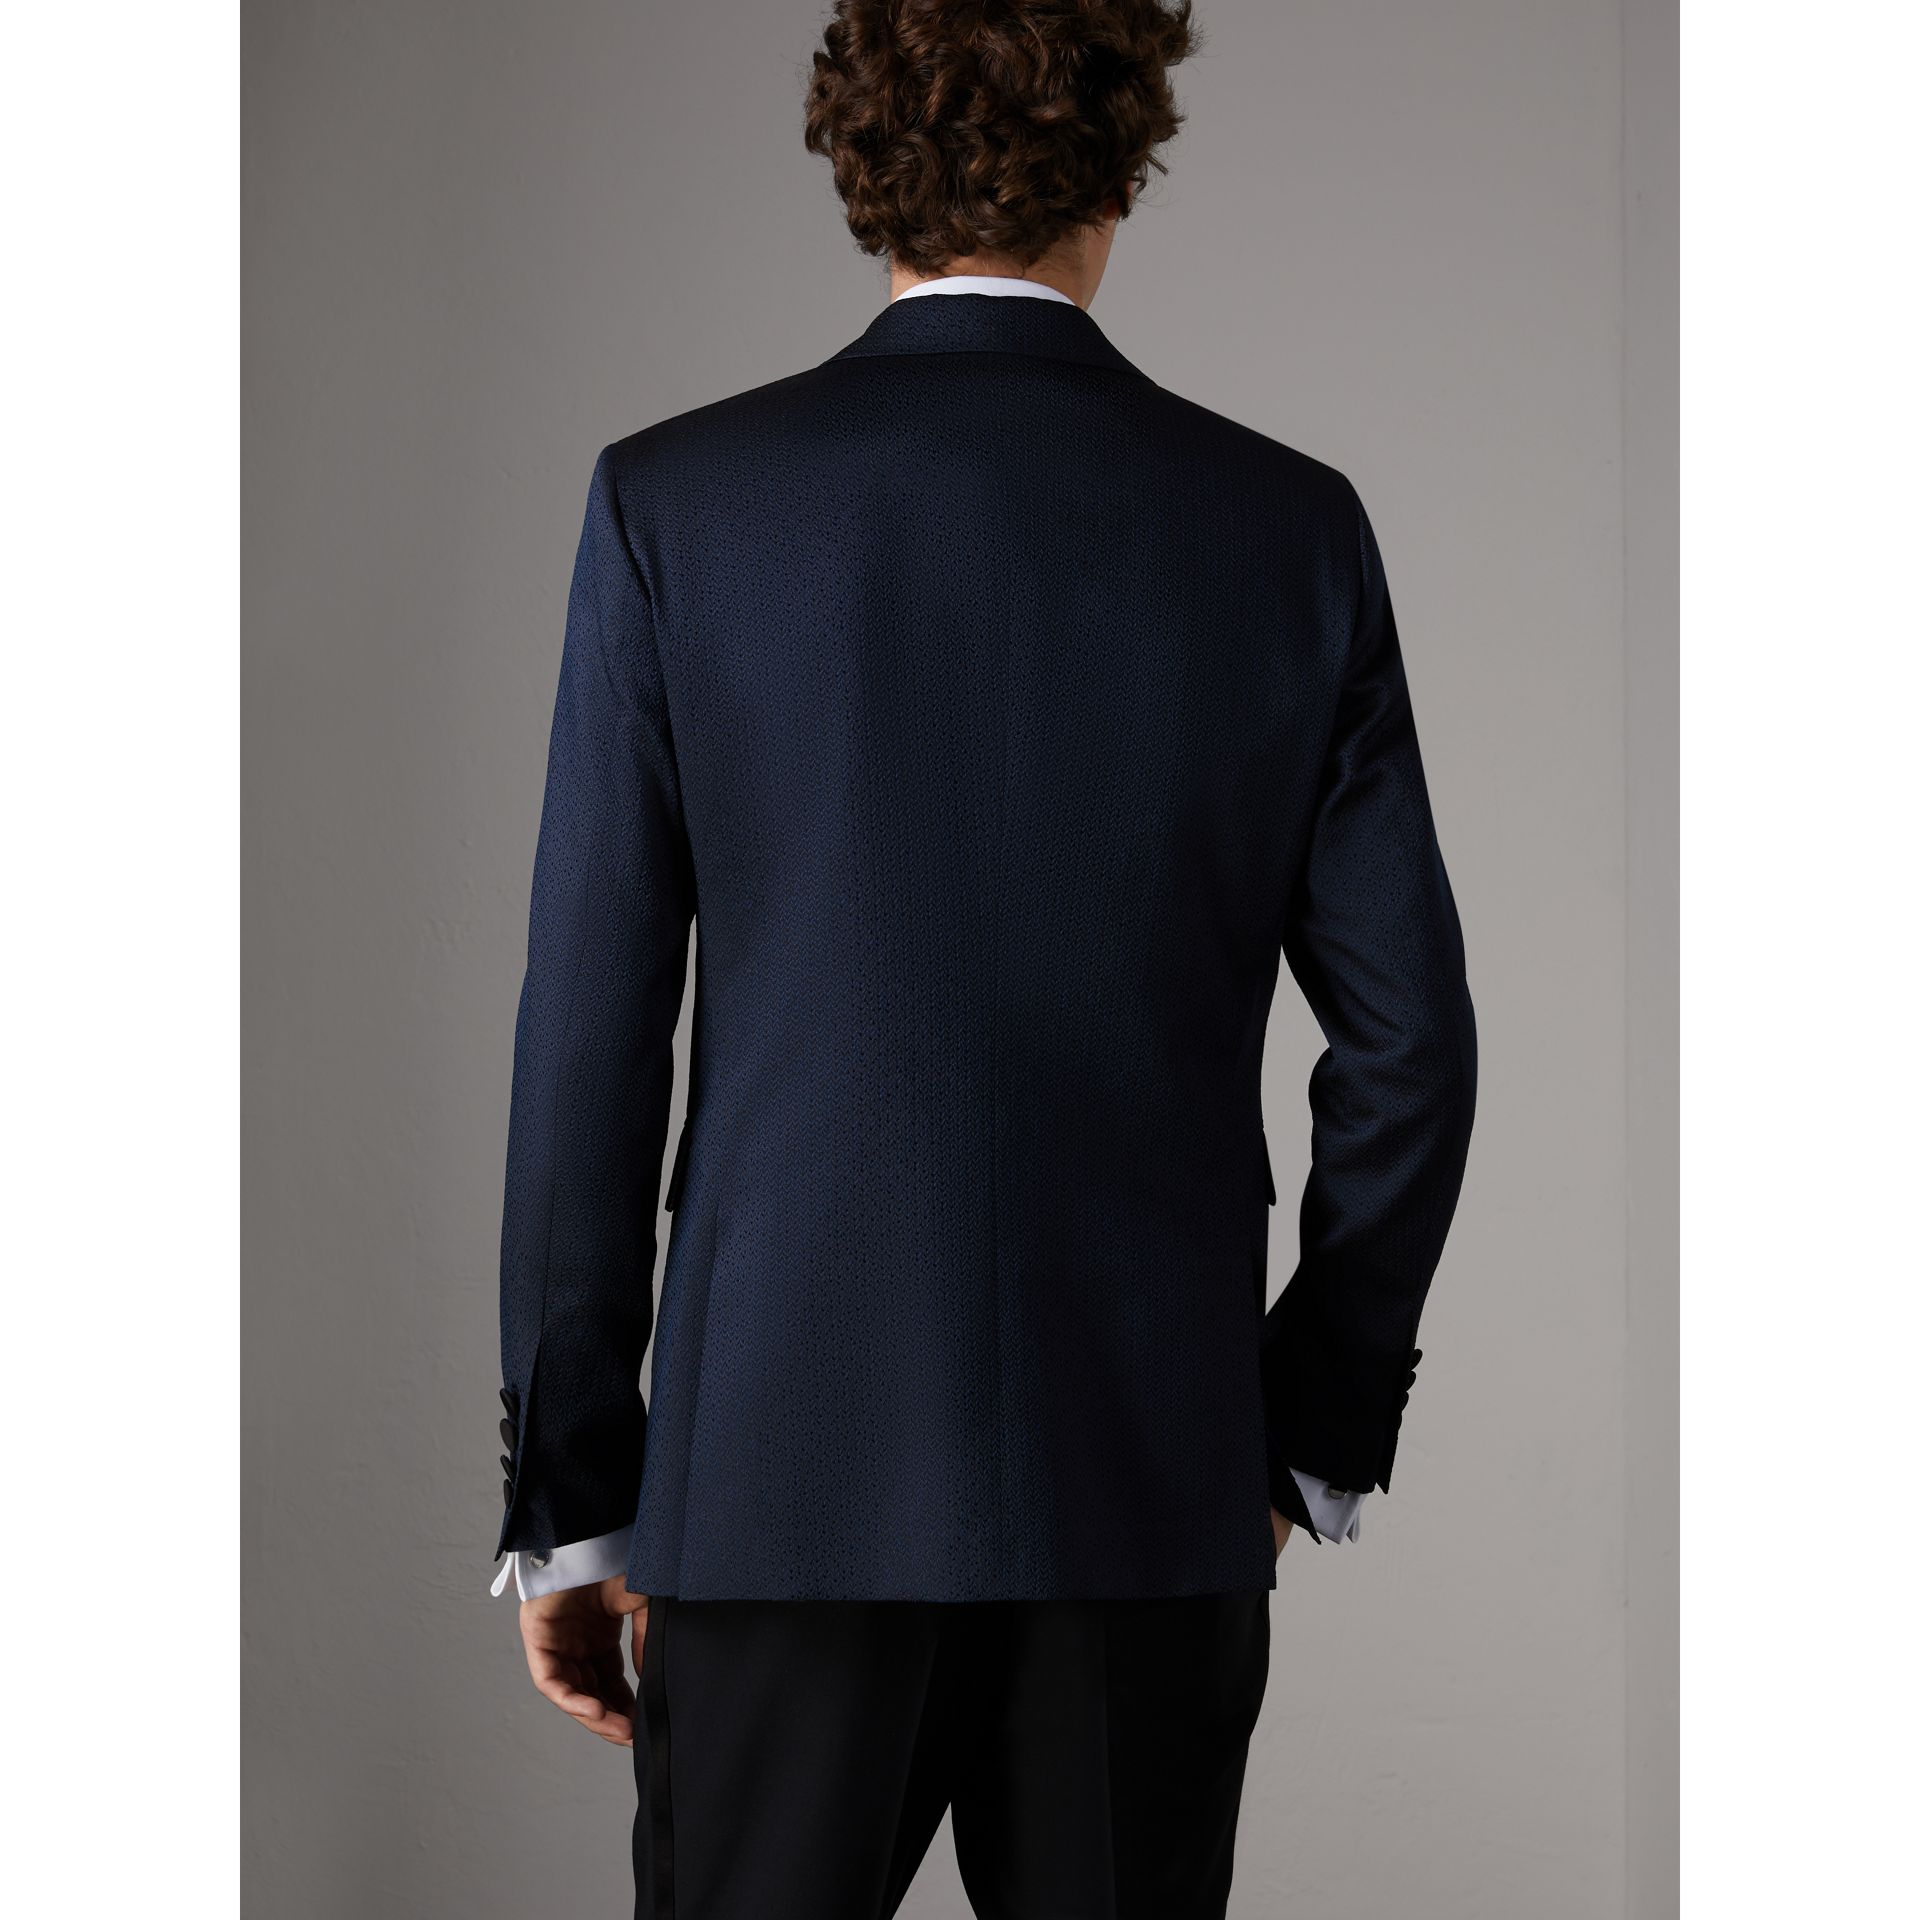 Soho Fit Jacquard Evening Jacket in Navy - Men | Burberry - gallery image 3